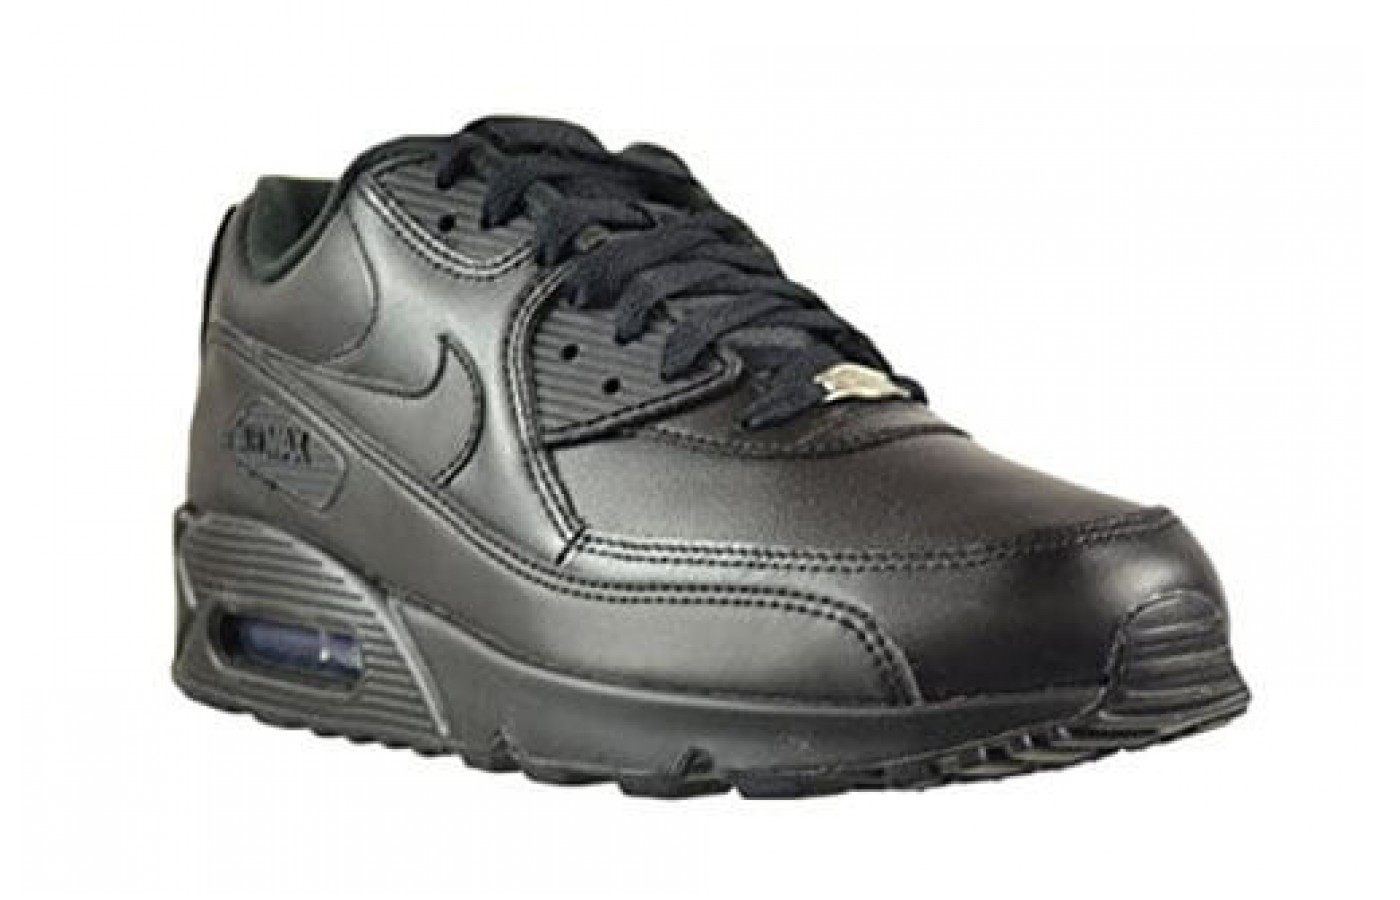 6b1a9f0d46744 Nike Air Max 90 Leather - To Buy or Not in July 2019?